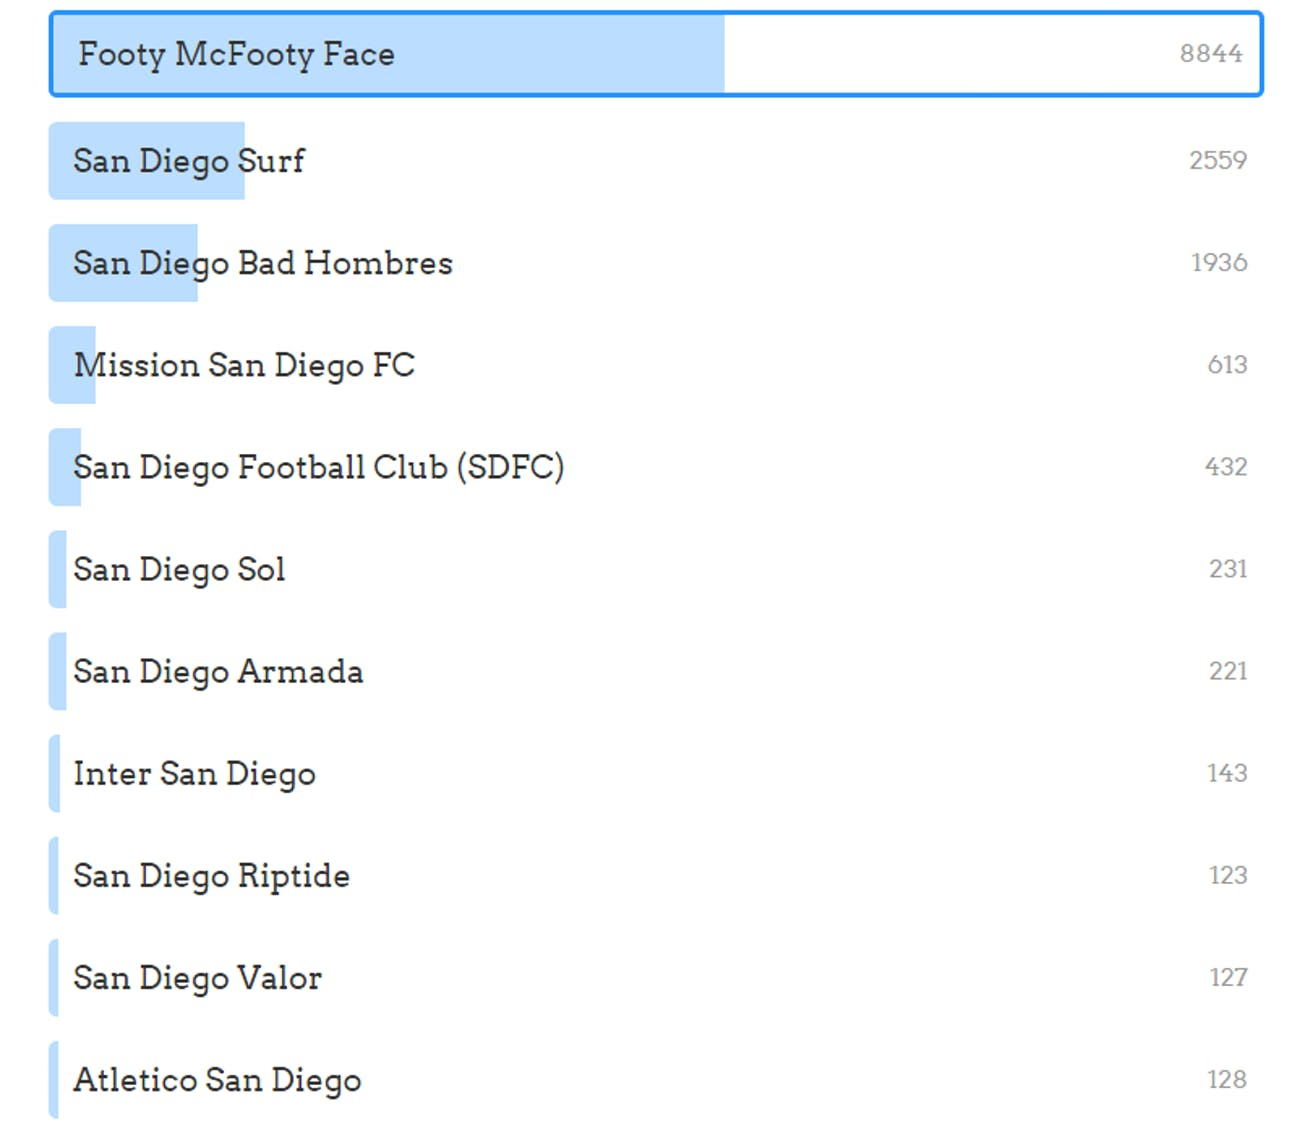 Footy McFootface is leading in a Facebook poll to name a new San Diego soccer team.